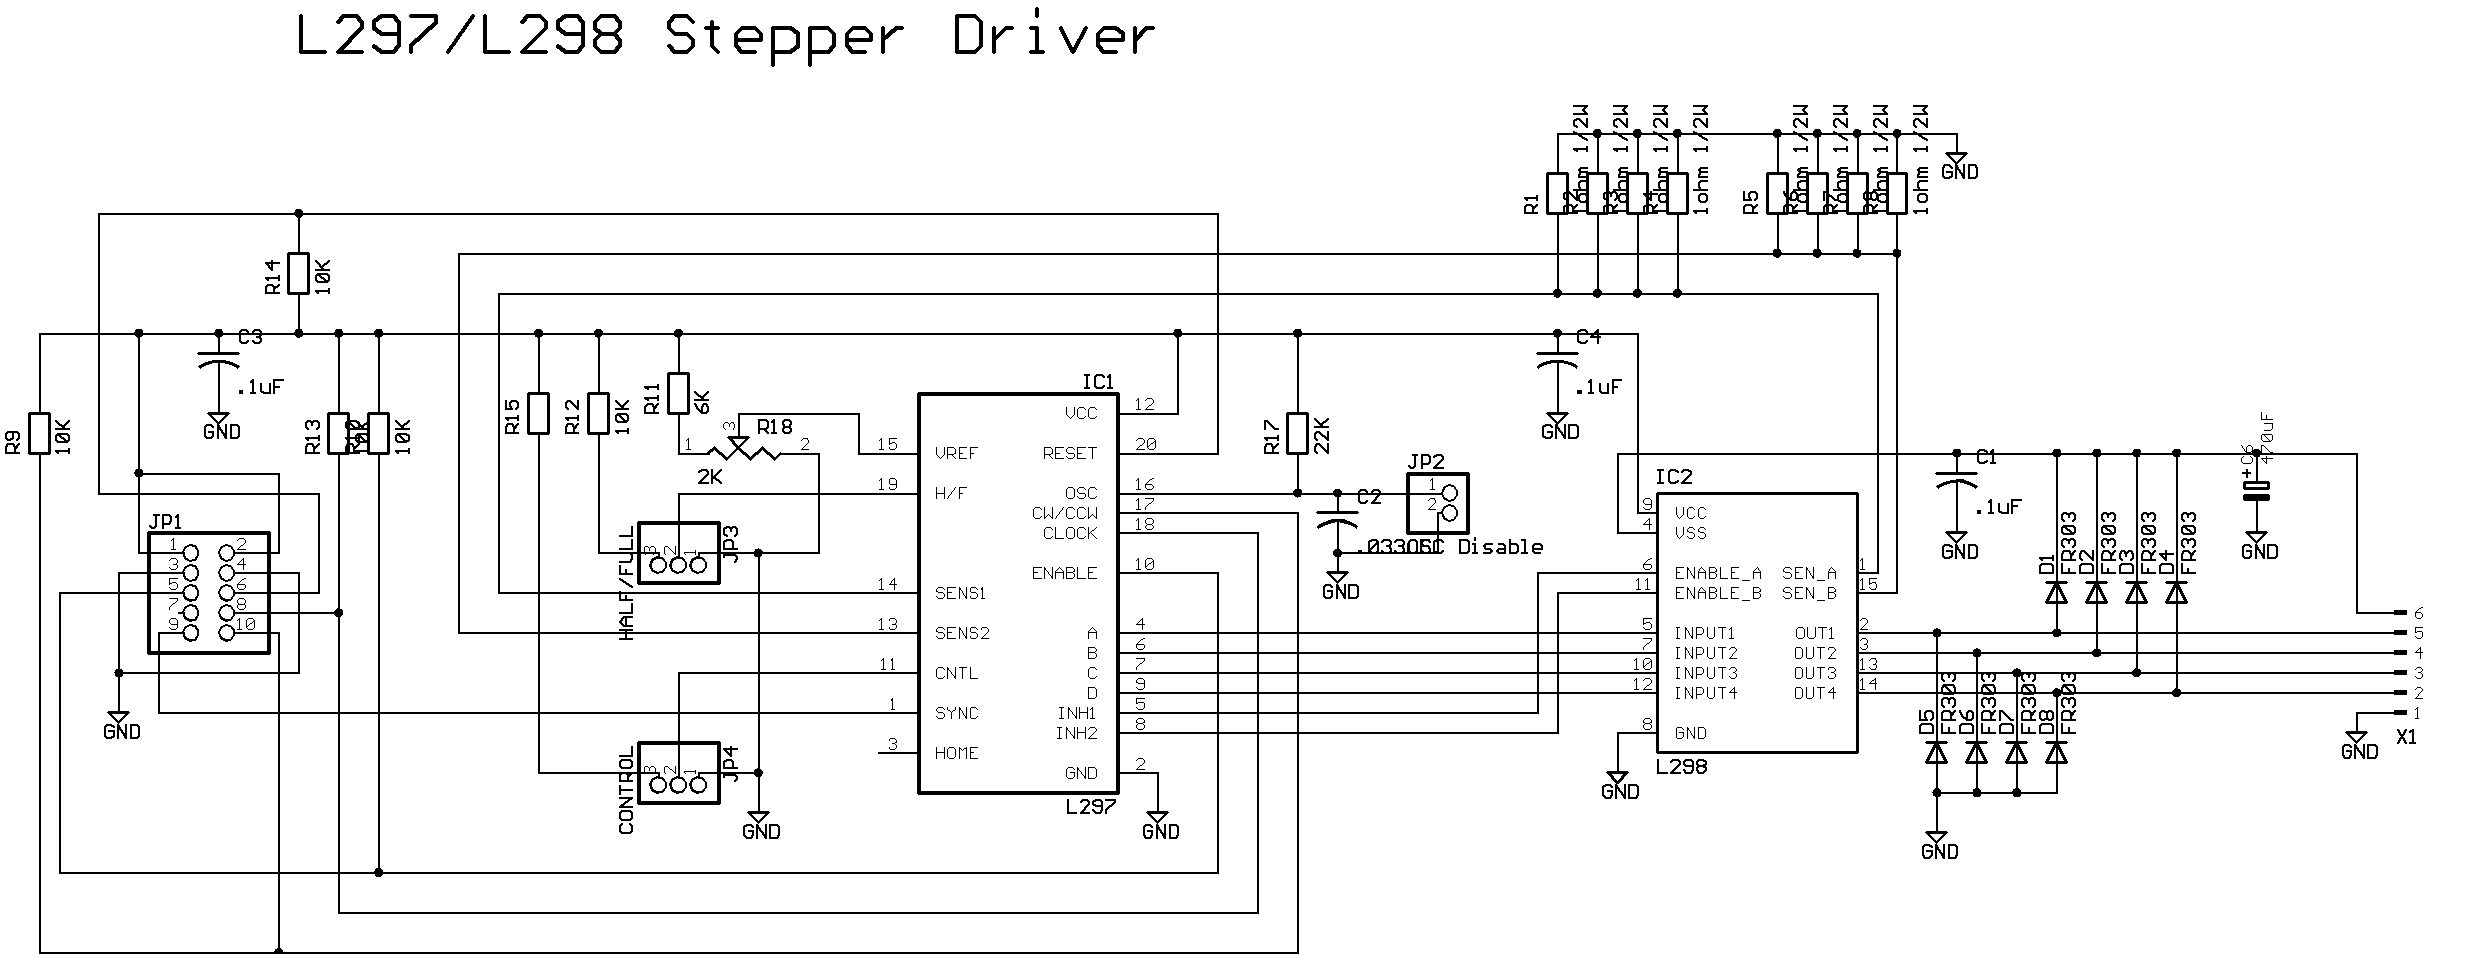 L298n Stepper Motor Driver Circuit Control Diagram L297 298